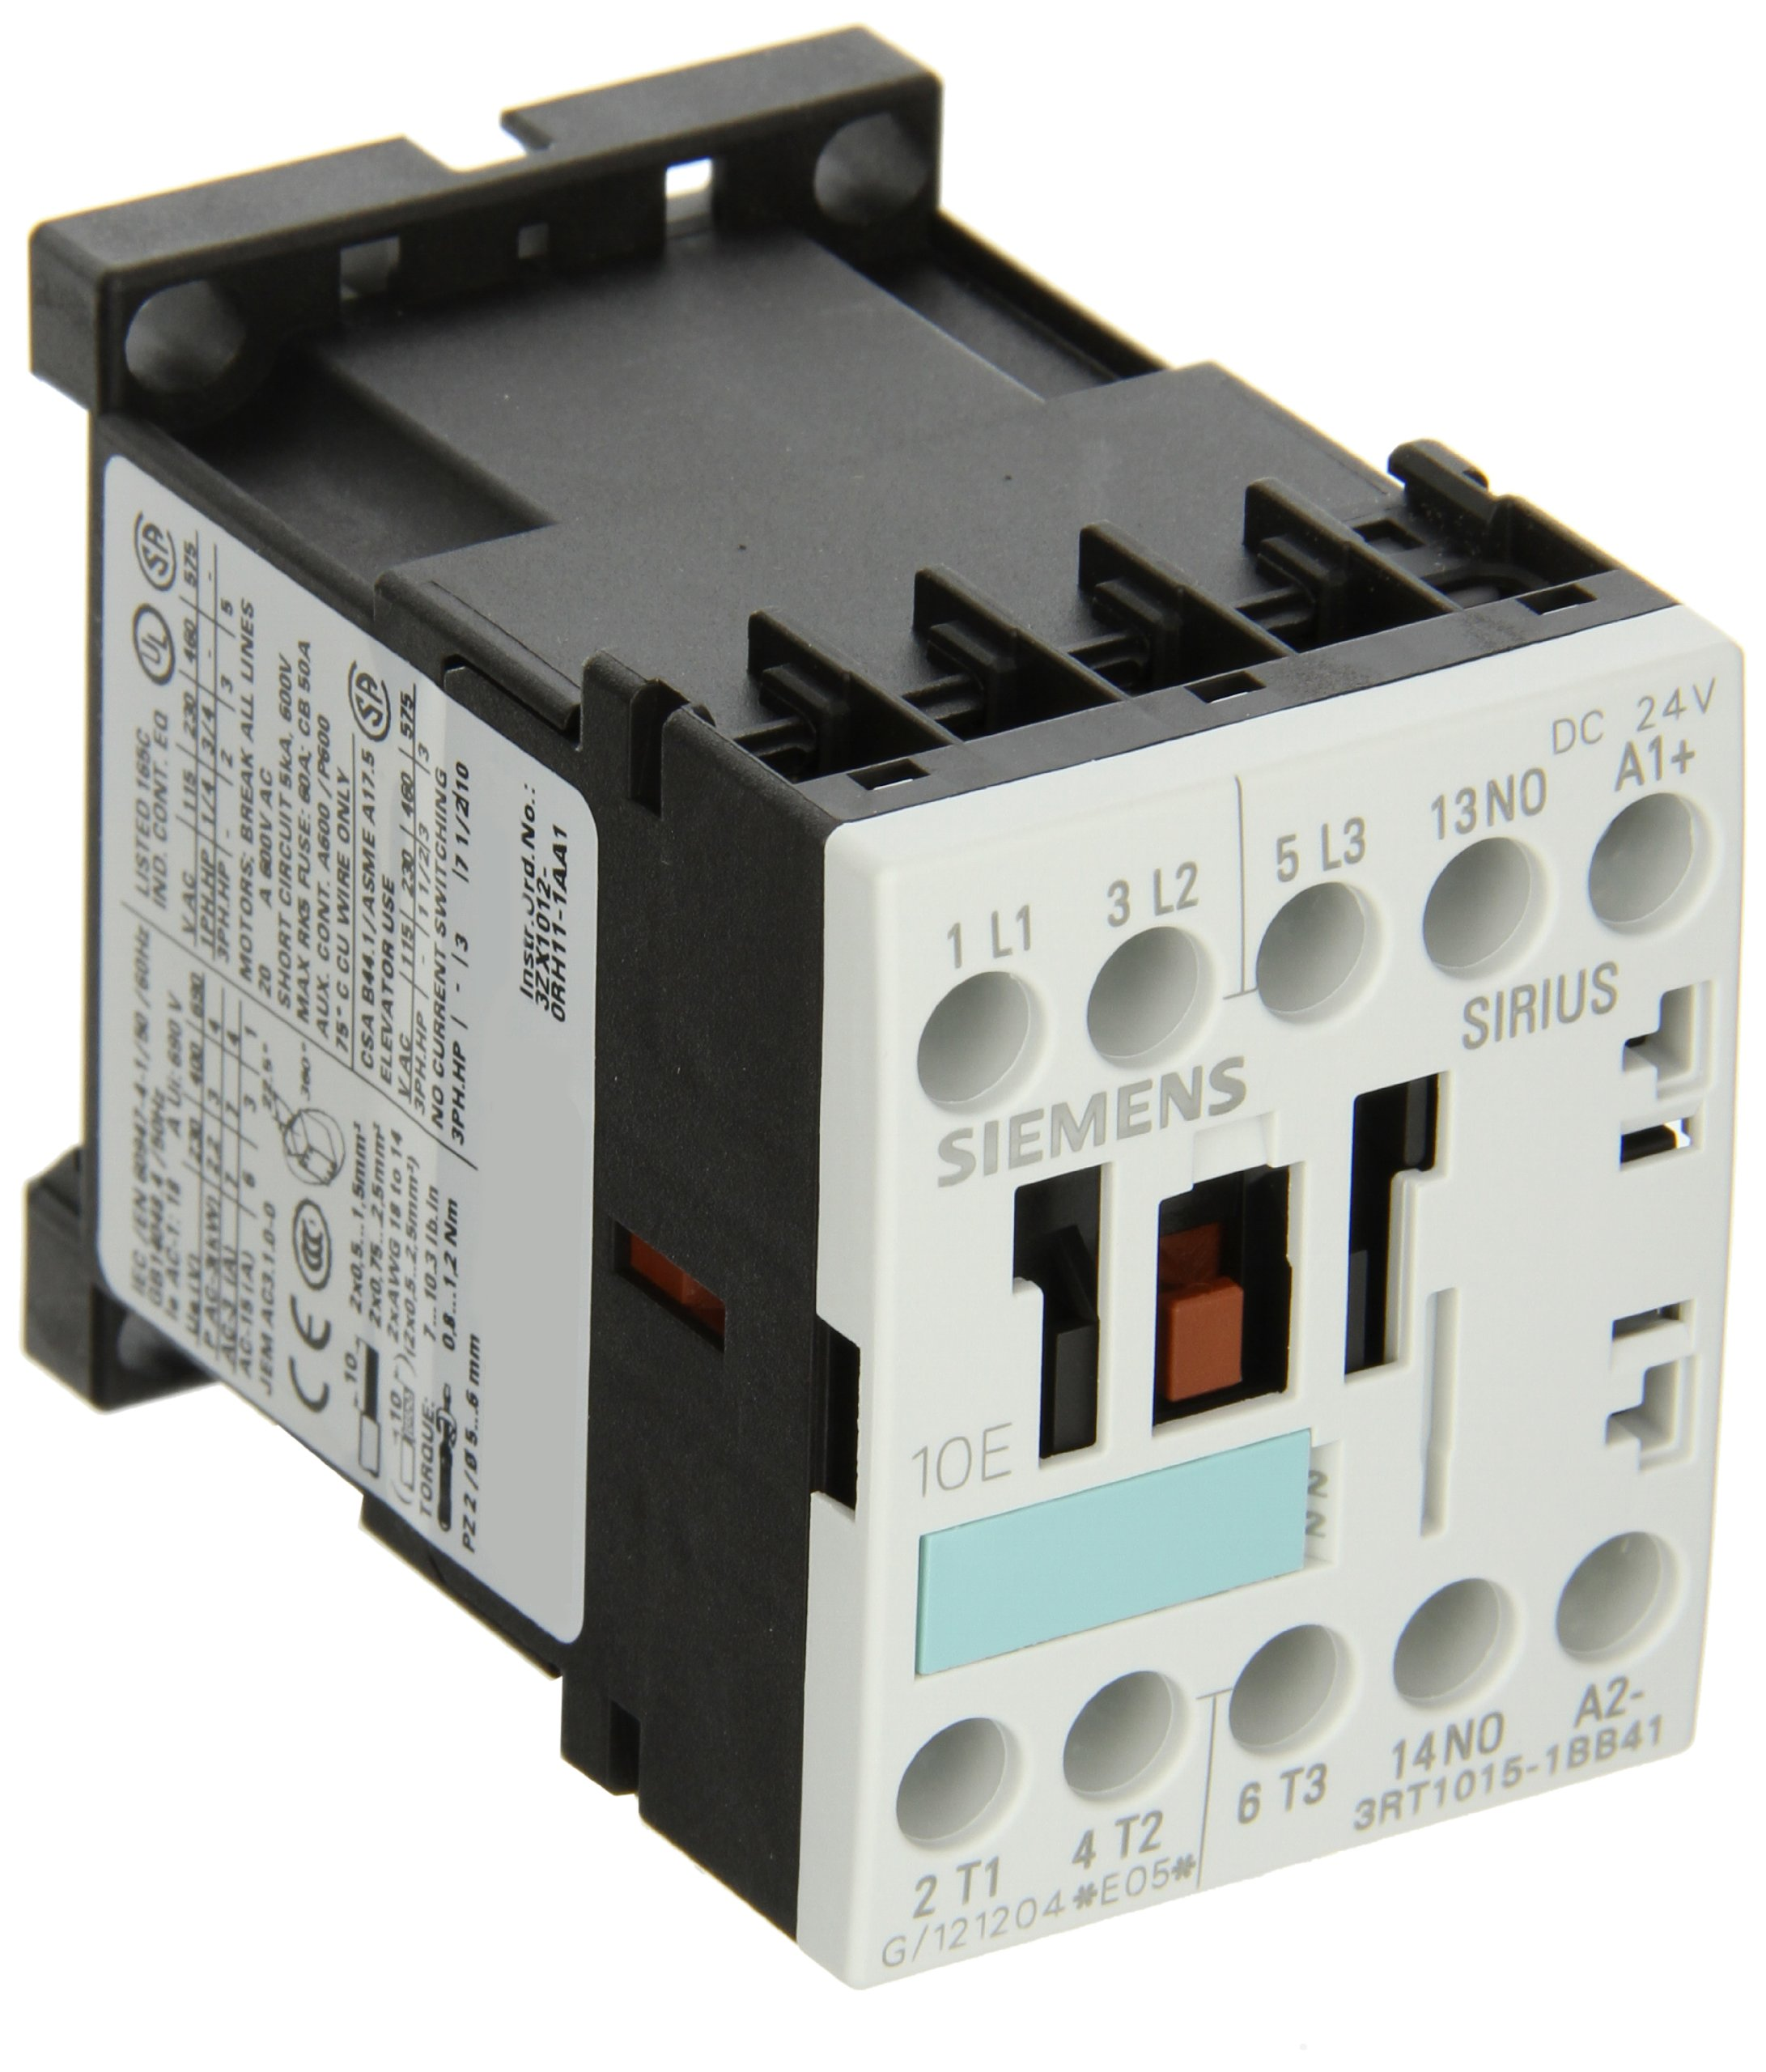 Siemens 3RT10 15-1BB41 Motor Contactor, 3 Poles, Screw Terminals, S00 Frame Size, 1 NO Auxiliary Contact, 24V DC Coil Voltage